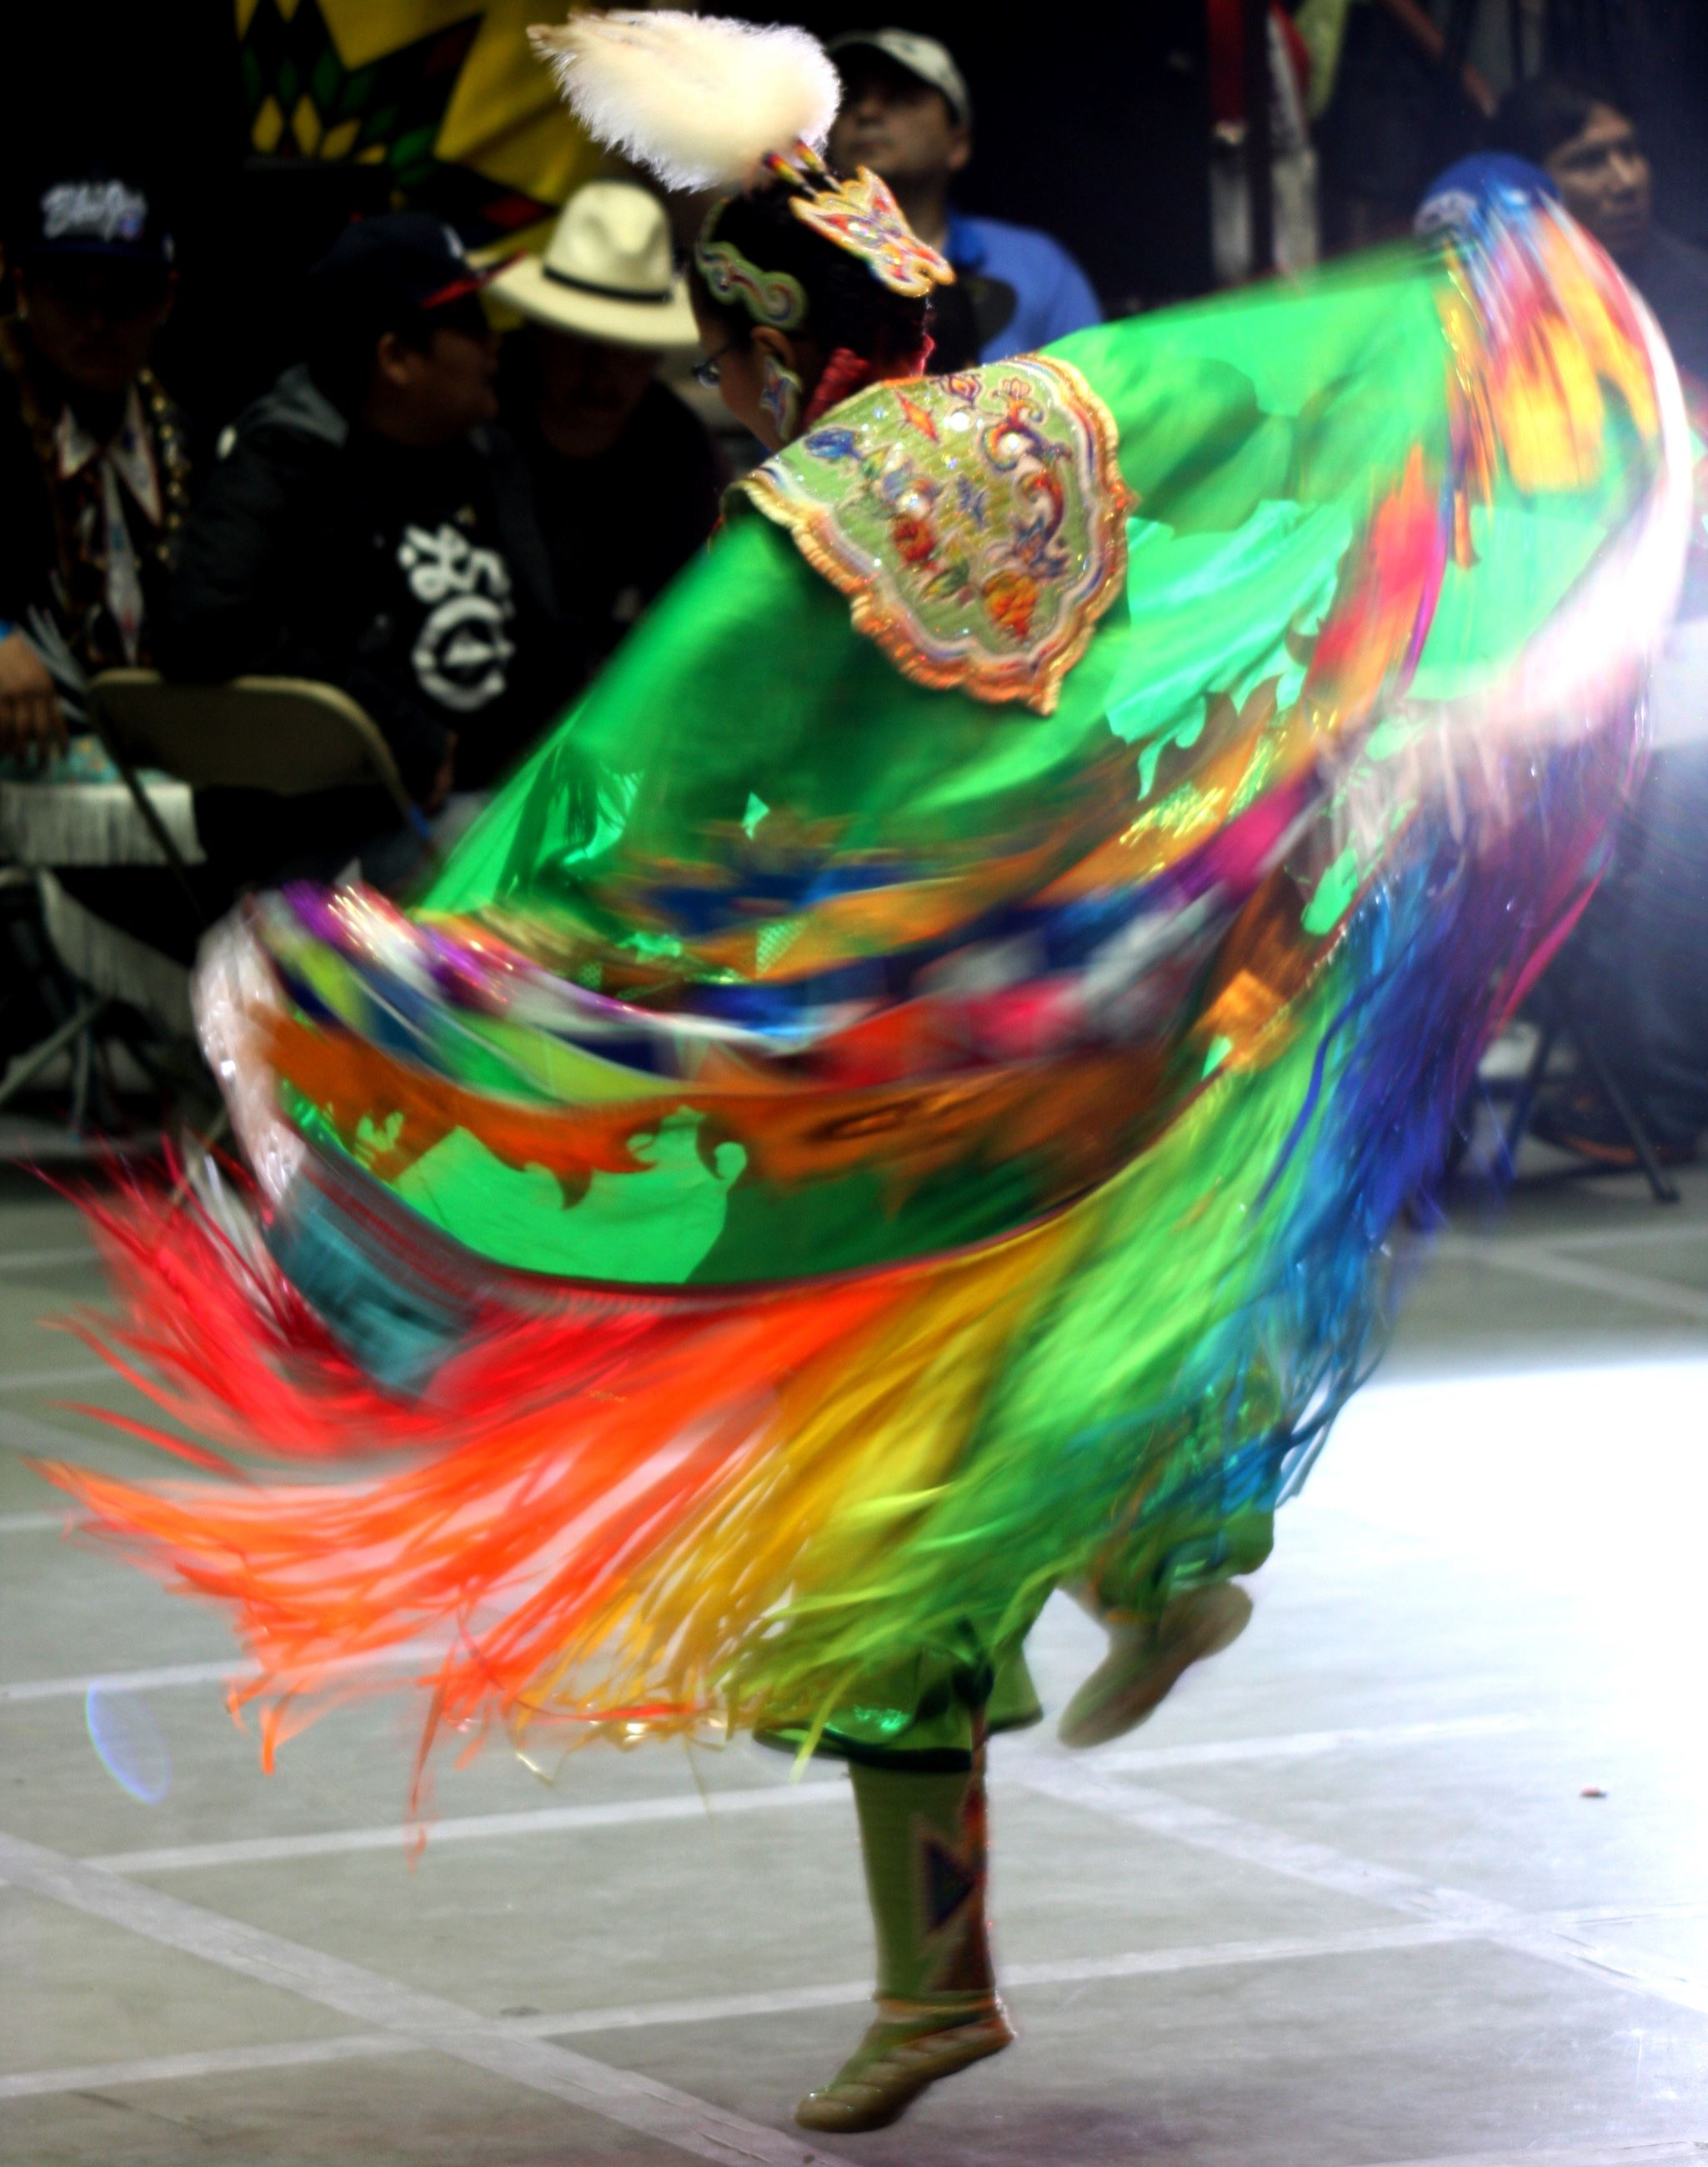 Dancer dressed in brightly colored clothing